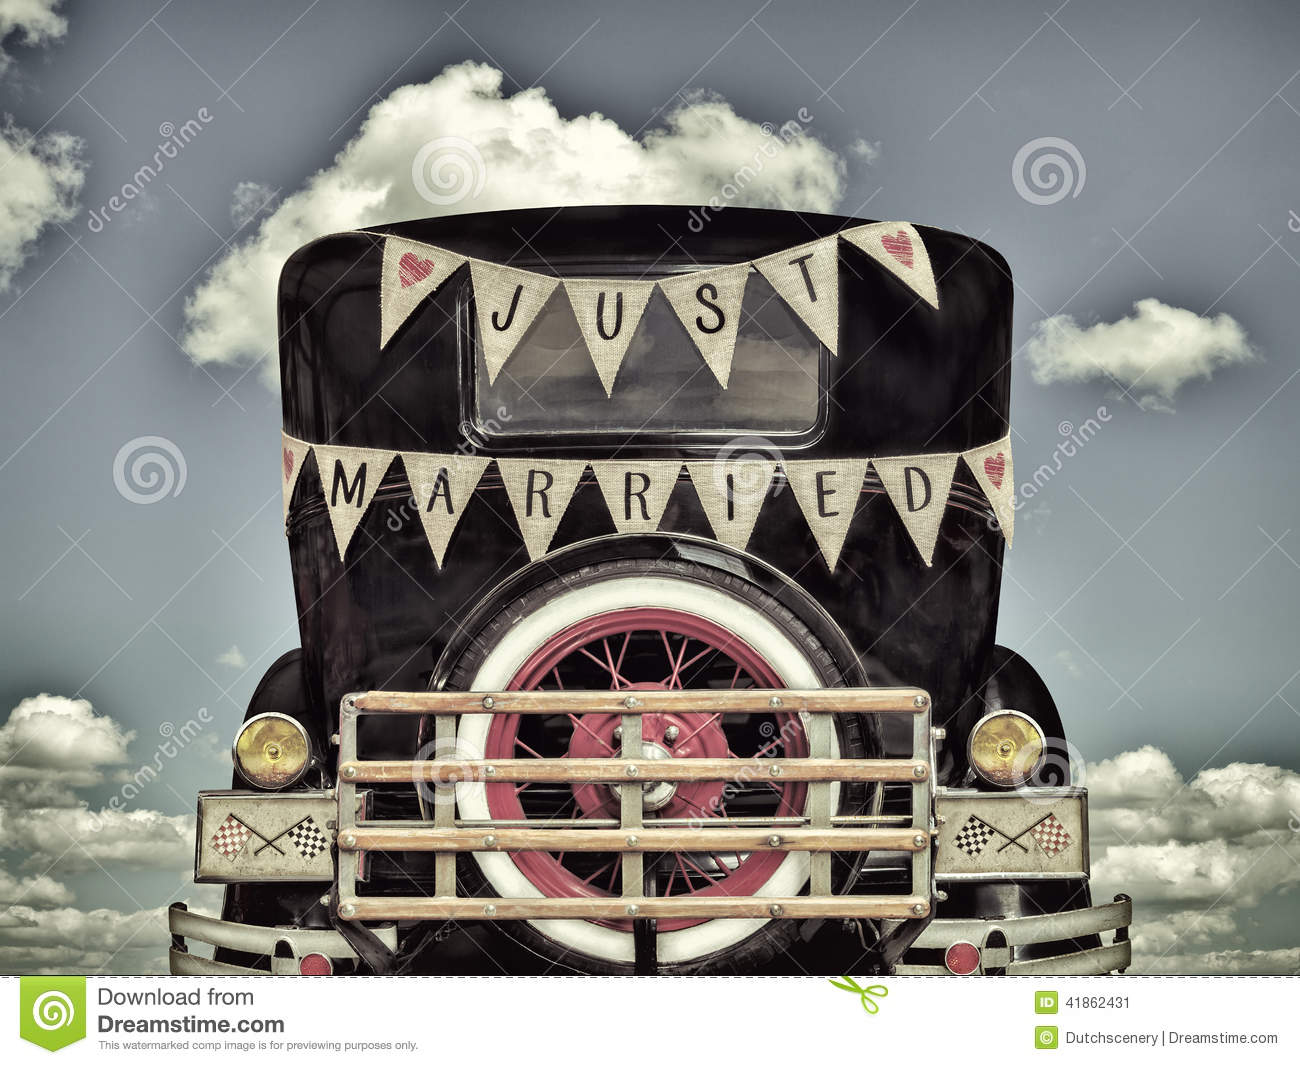 Retro Styled Image Of An Old Car With Just Married